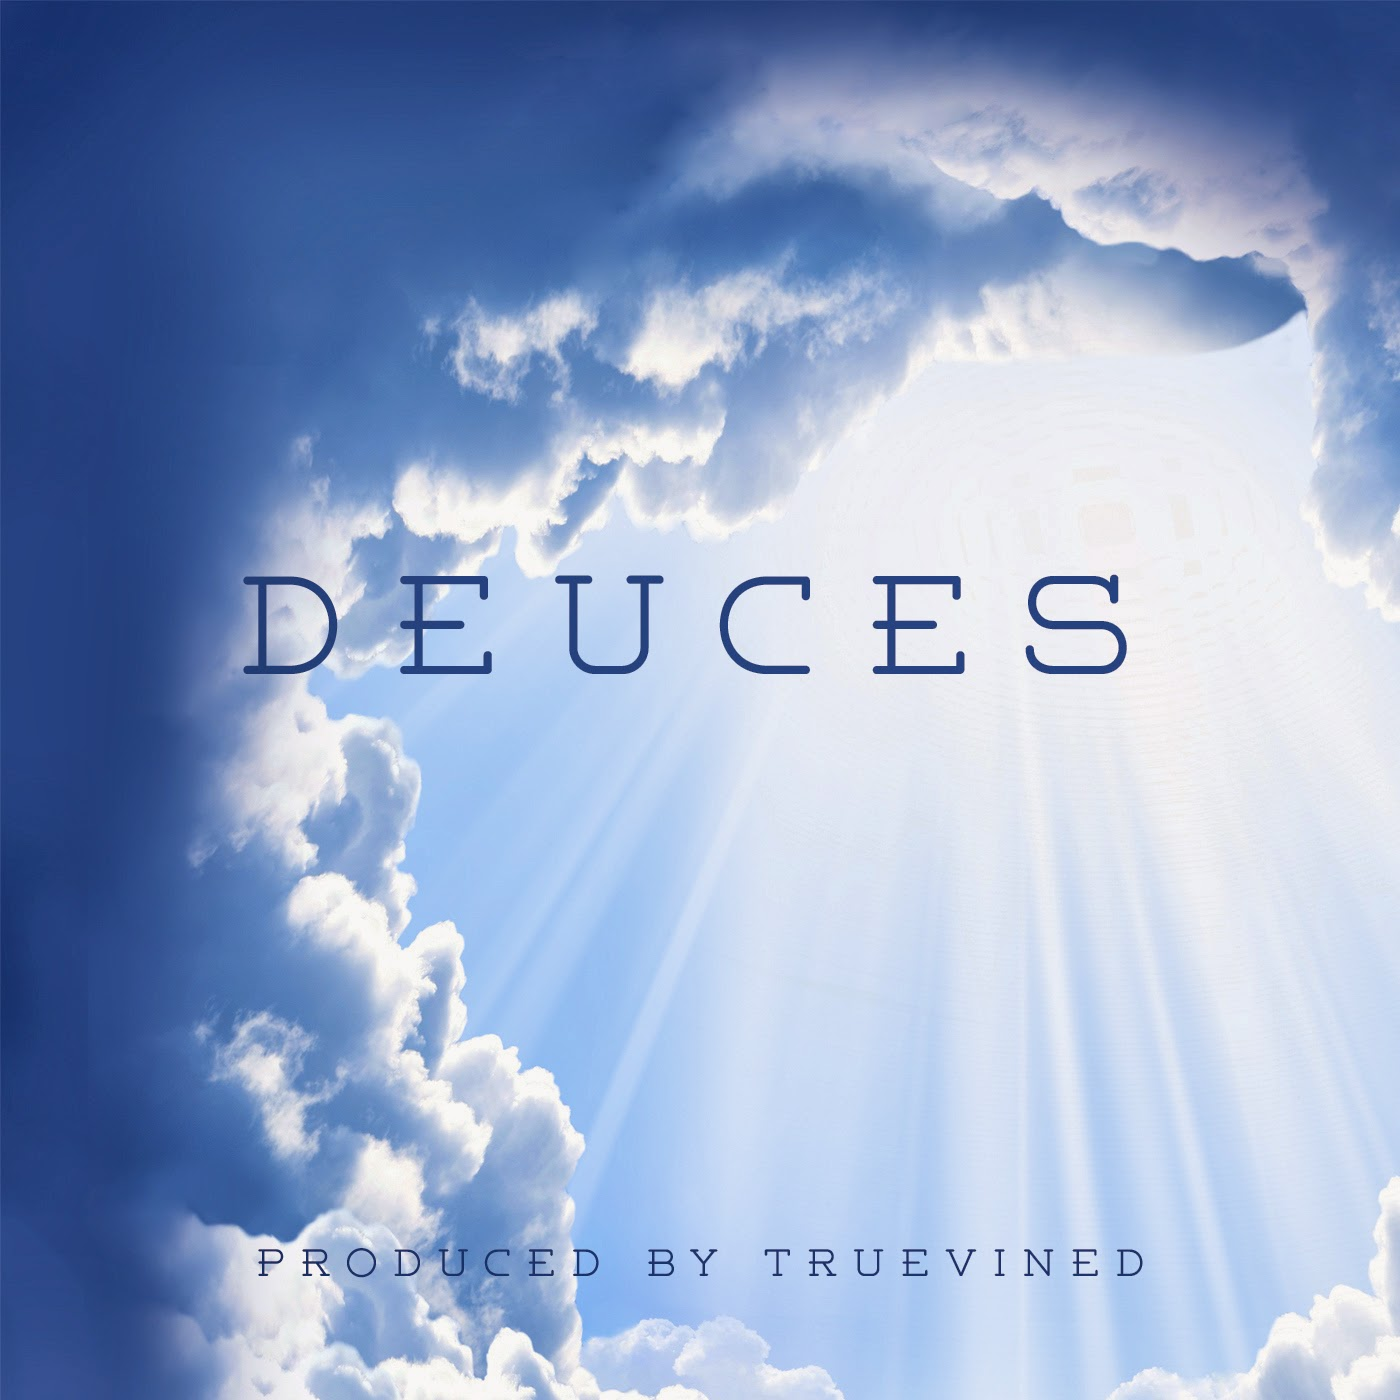 'Deuces' - New beat by TRUEVINED - beat albumart